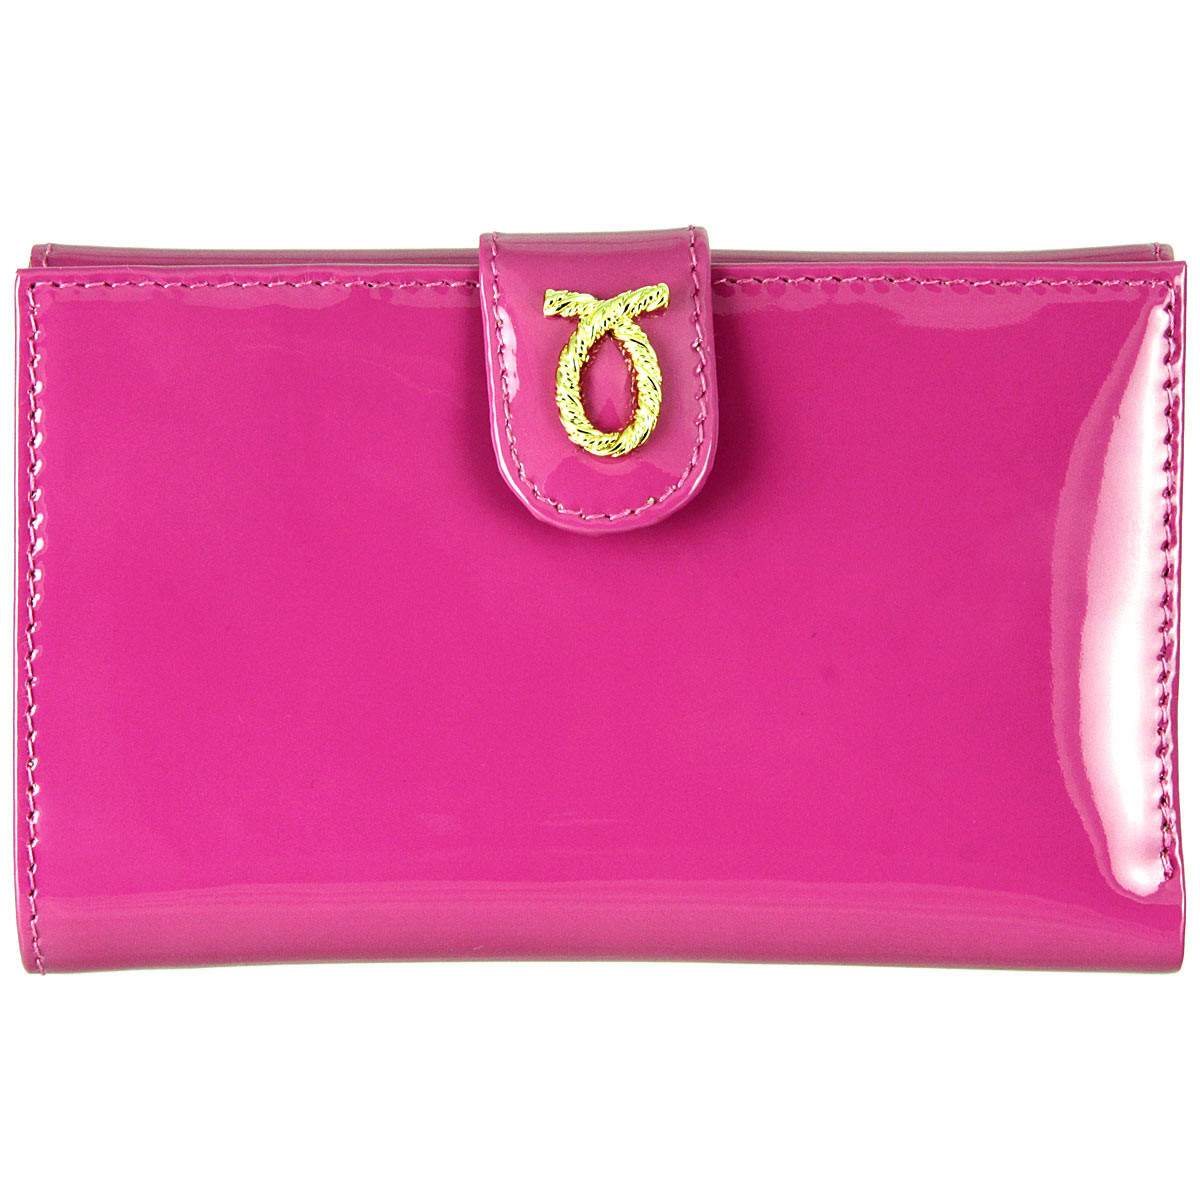 Launer 686 medium rope logo patent leather purse pink front 44be8dd82553d